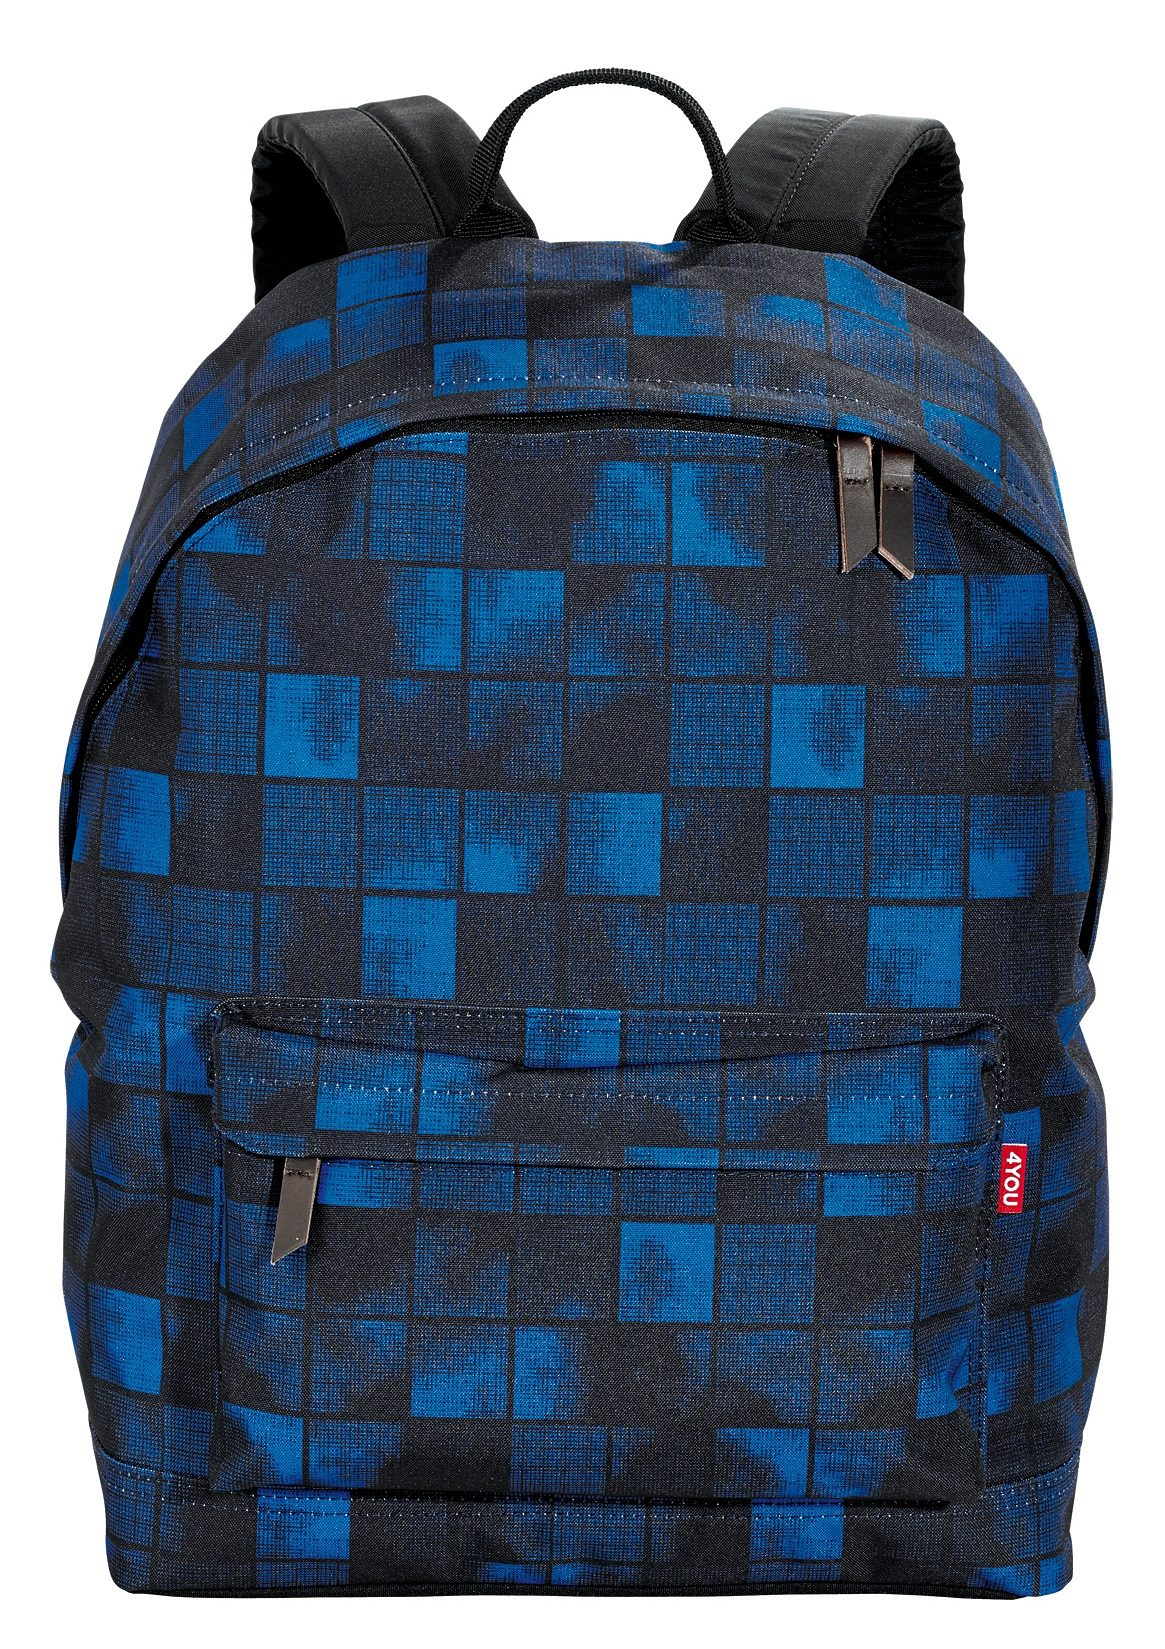 4YOU Rucksack, Squares Blue, »Daypack«